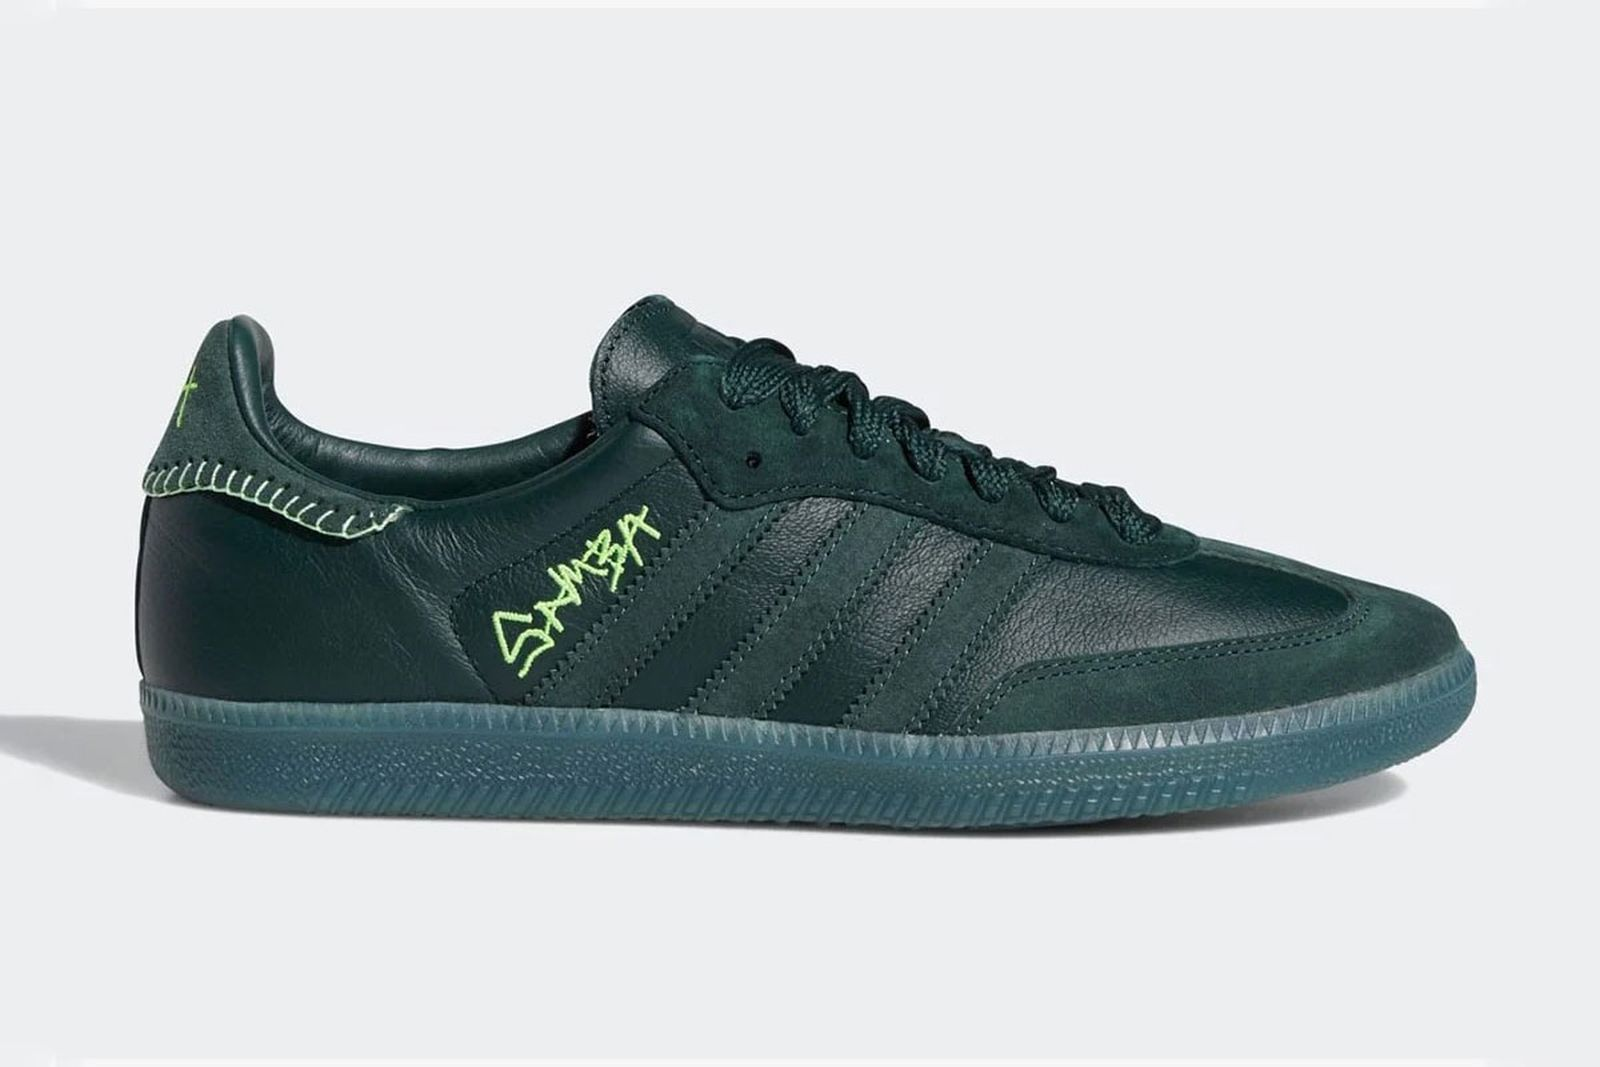 Jonah Hill adidas samba green product shot